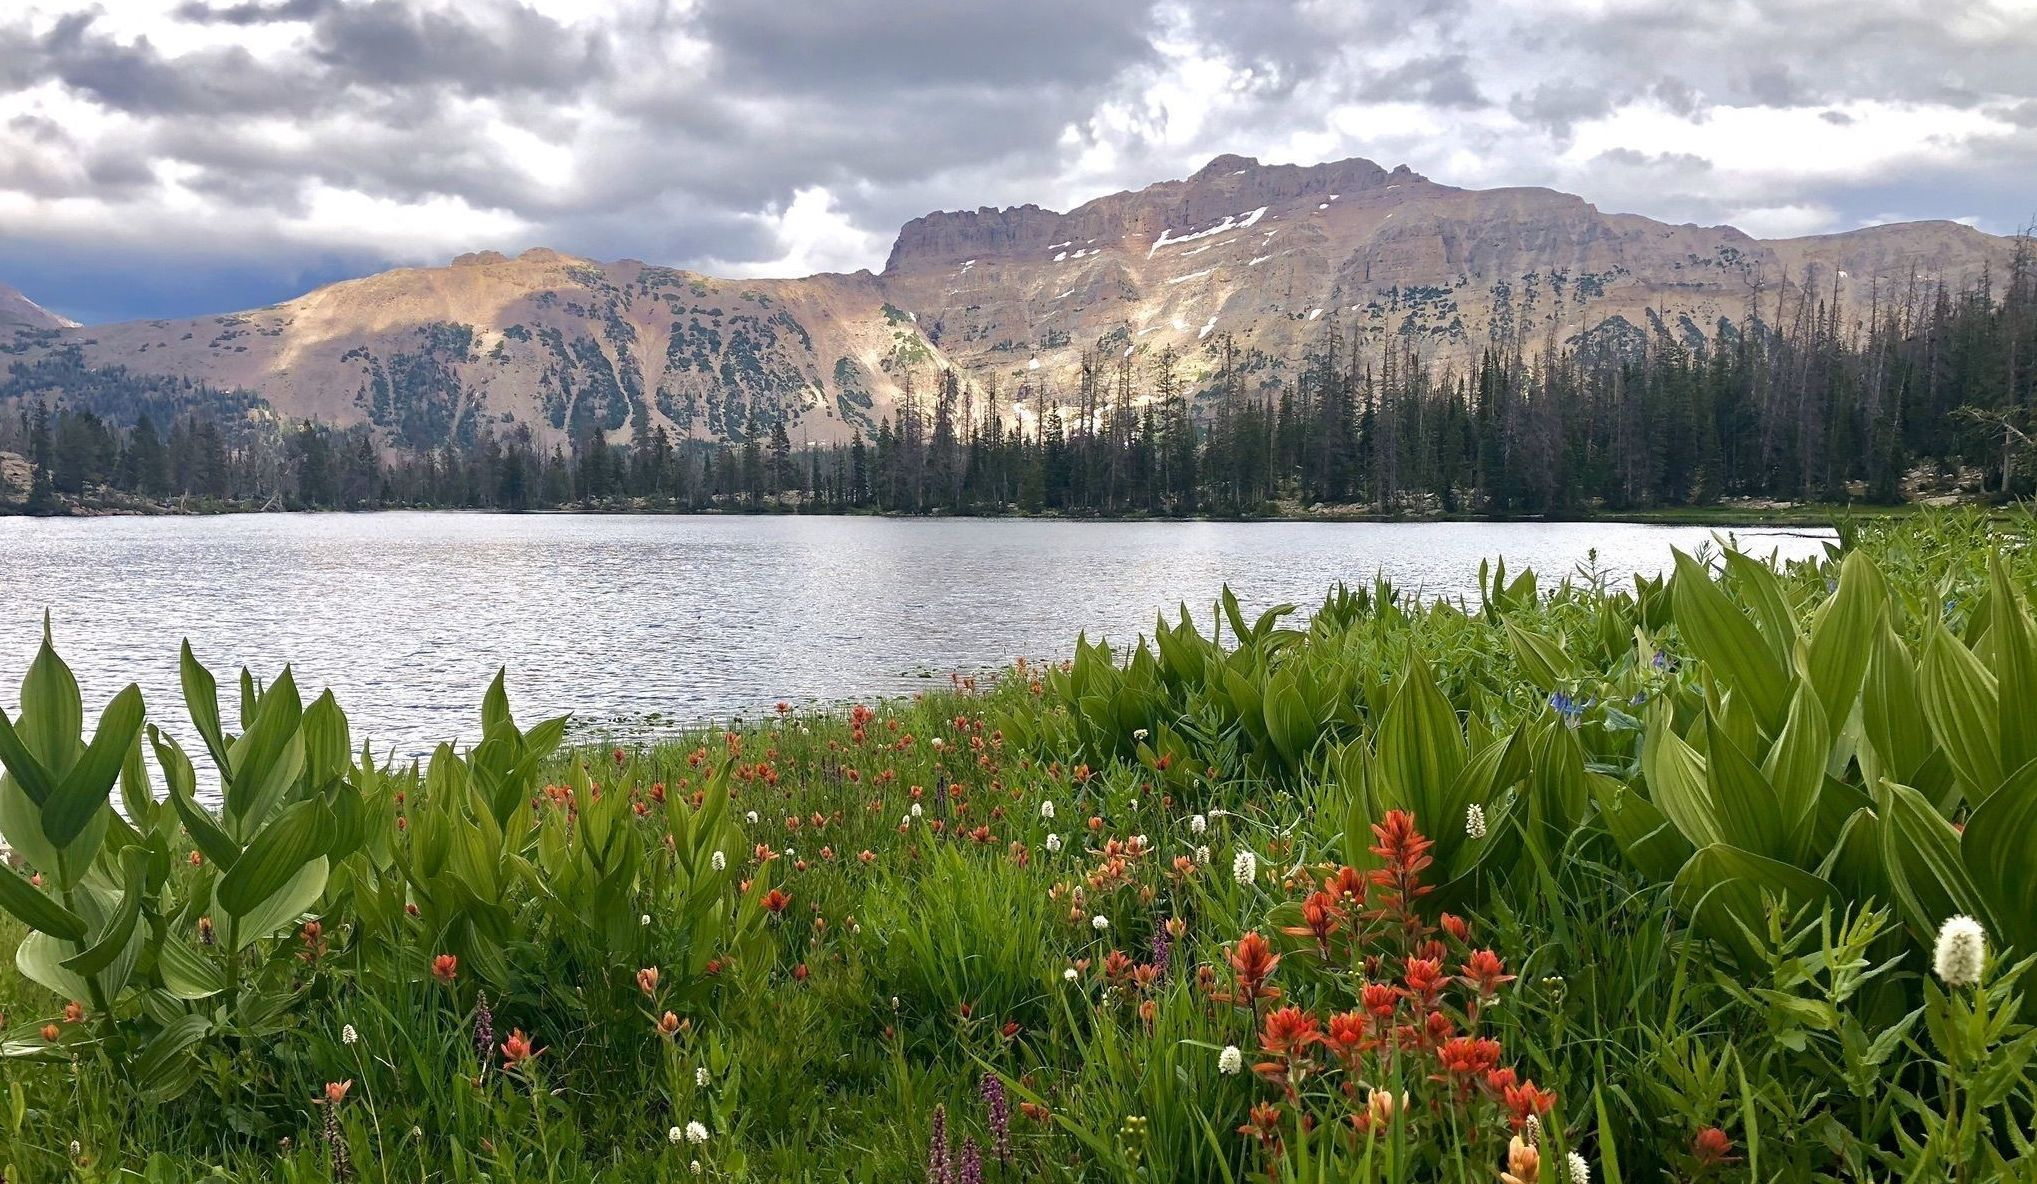 Take The Short, Easy Trail To Ruth Lake For A Utah Summer Adventure With The Family